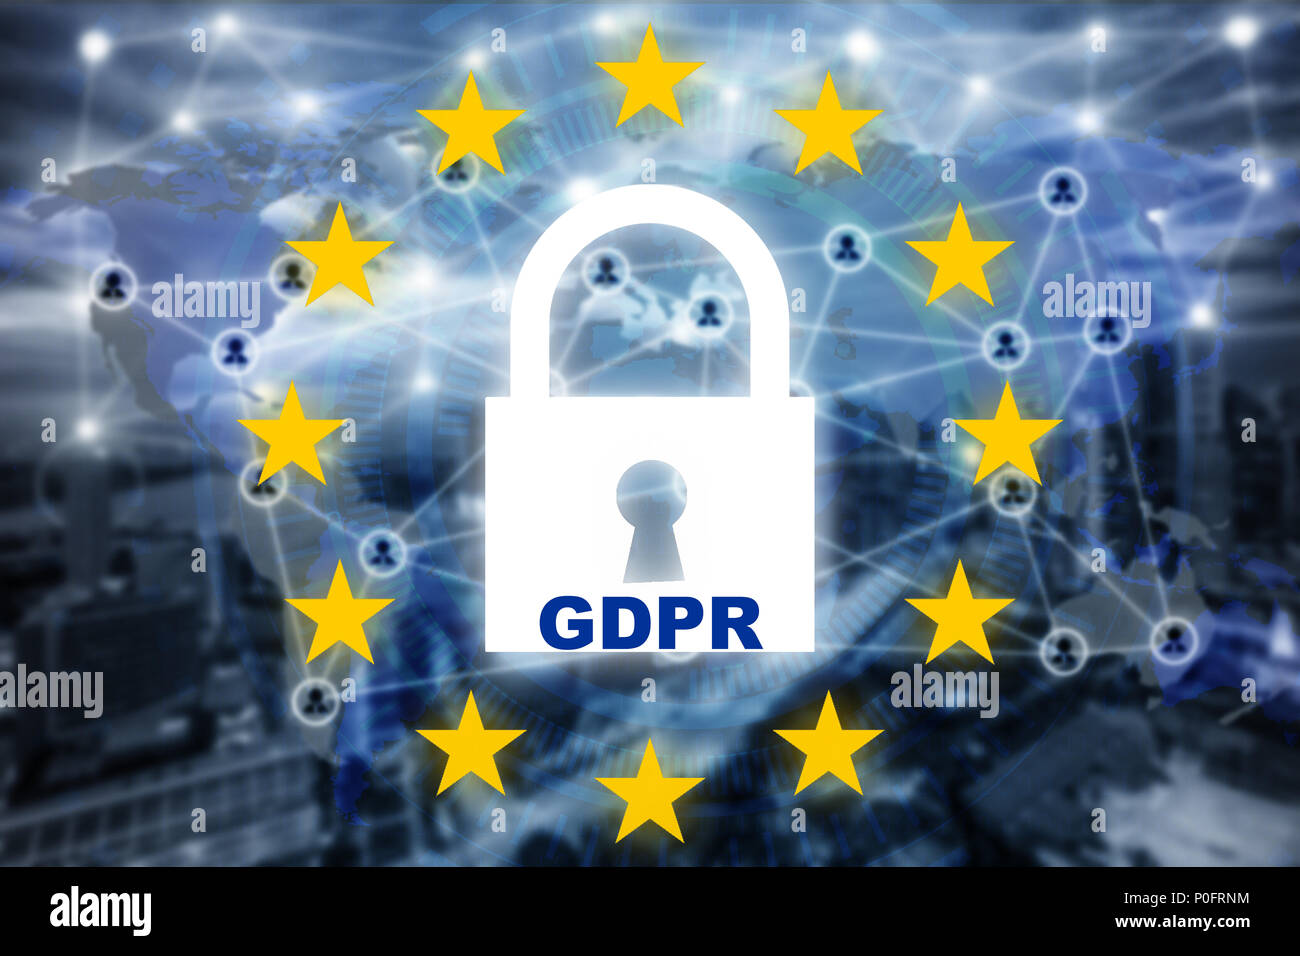 Data protection privacy concept. GDPR. EU. Cyber security network. Padlock icon and internet technology networking connection on virtual screen. - Stock Image